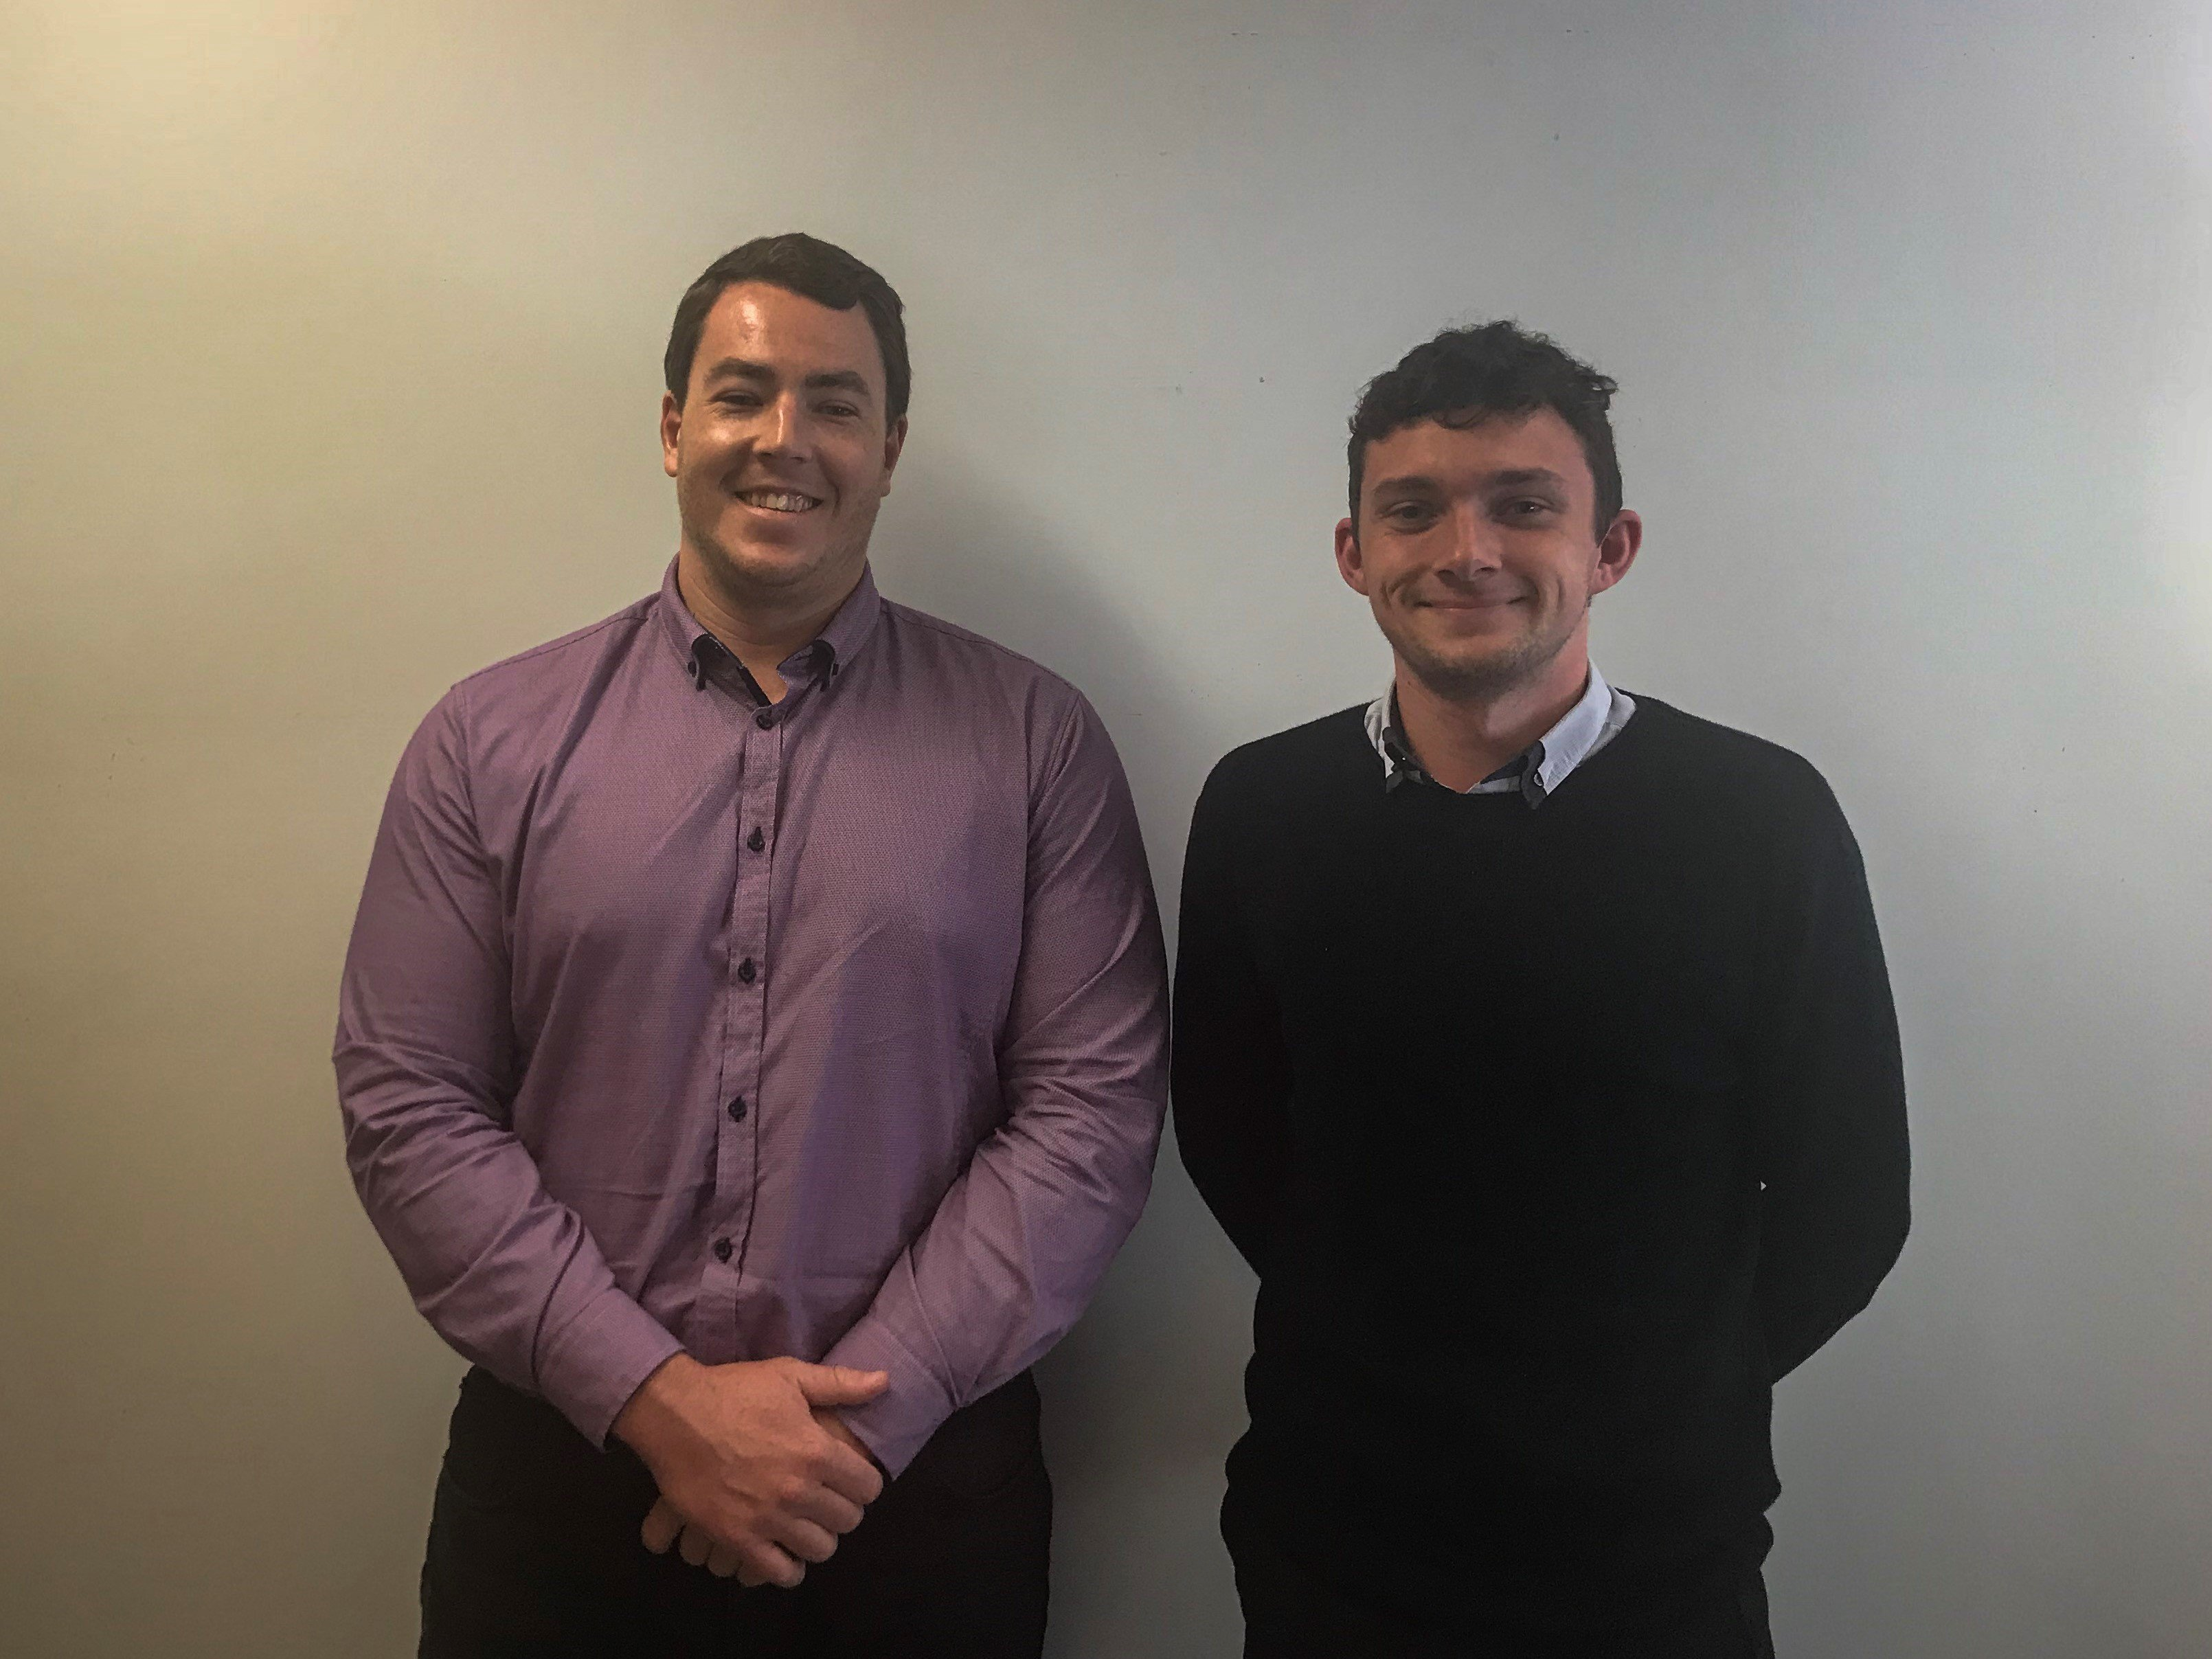 L to r 2018 graduates Lachlan Hanlon and Tom Hardy of Newcastle (photo); In Sydney our graduates are Ben Kingsland, Frank Weng and Sam Crosthwait